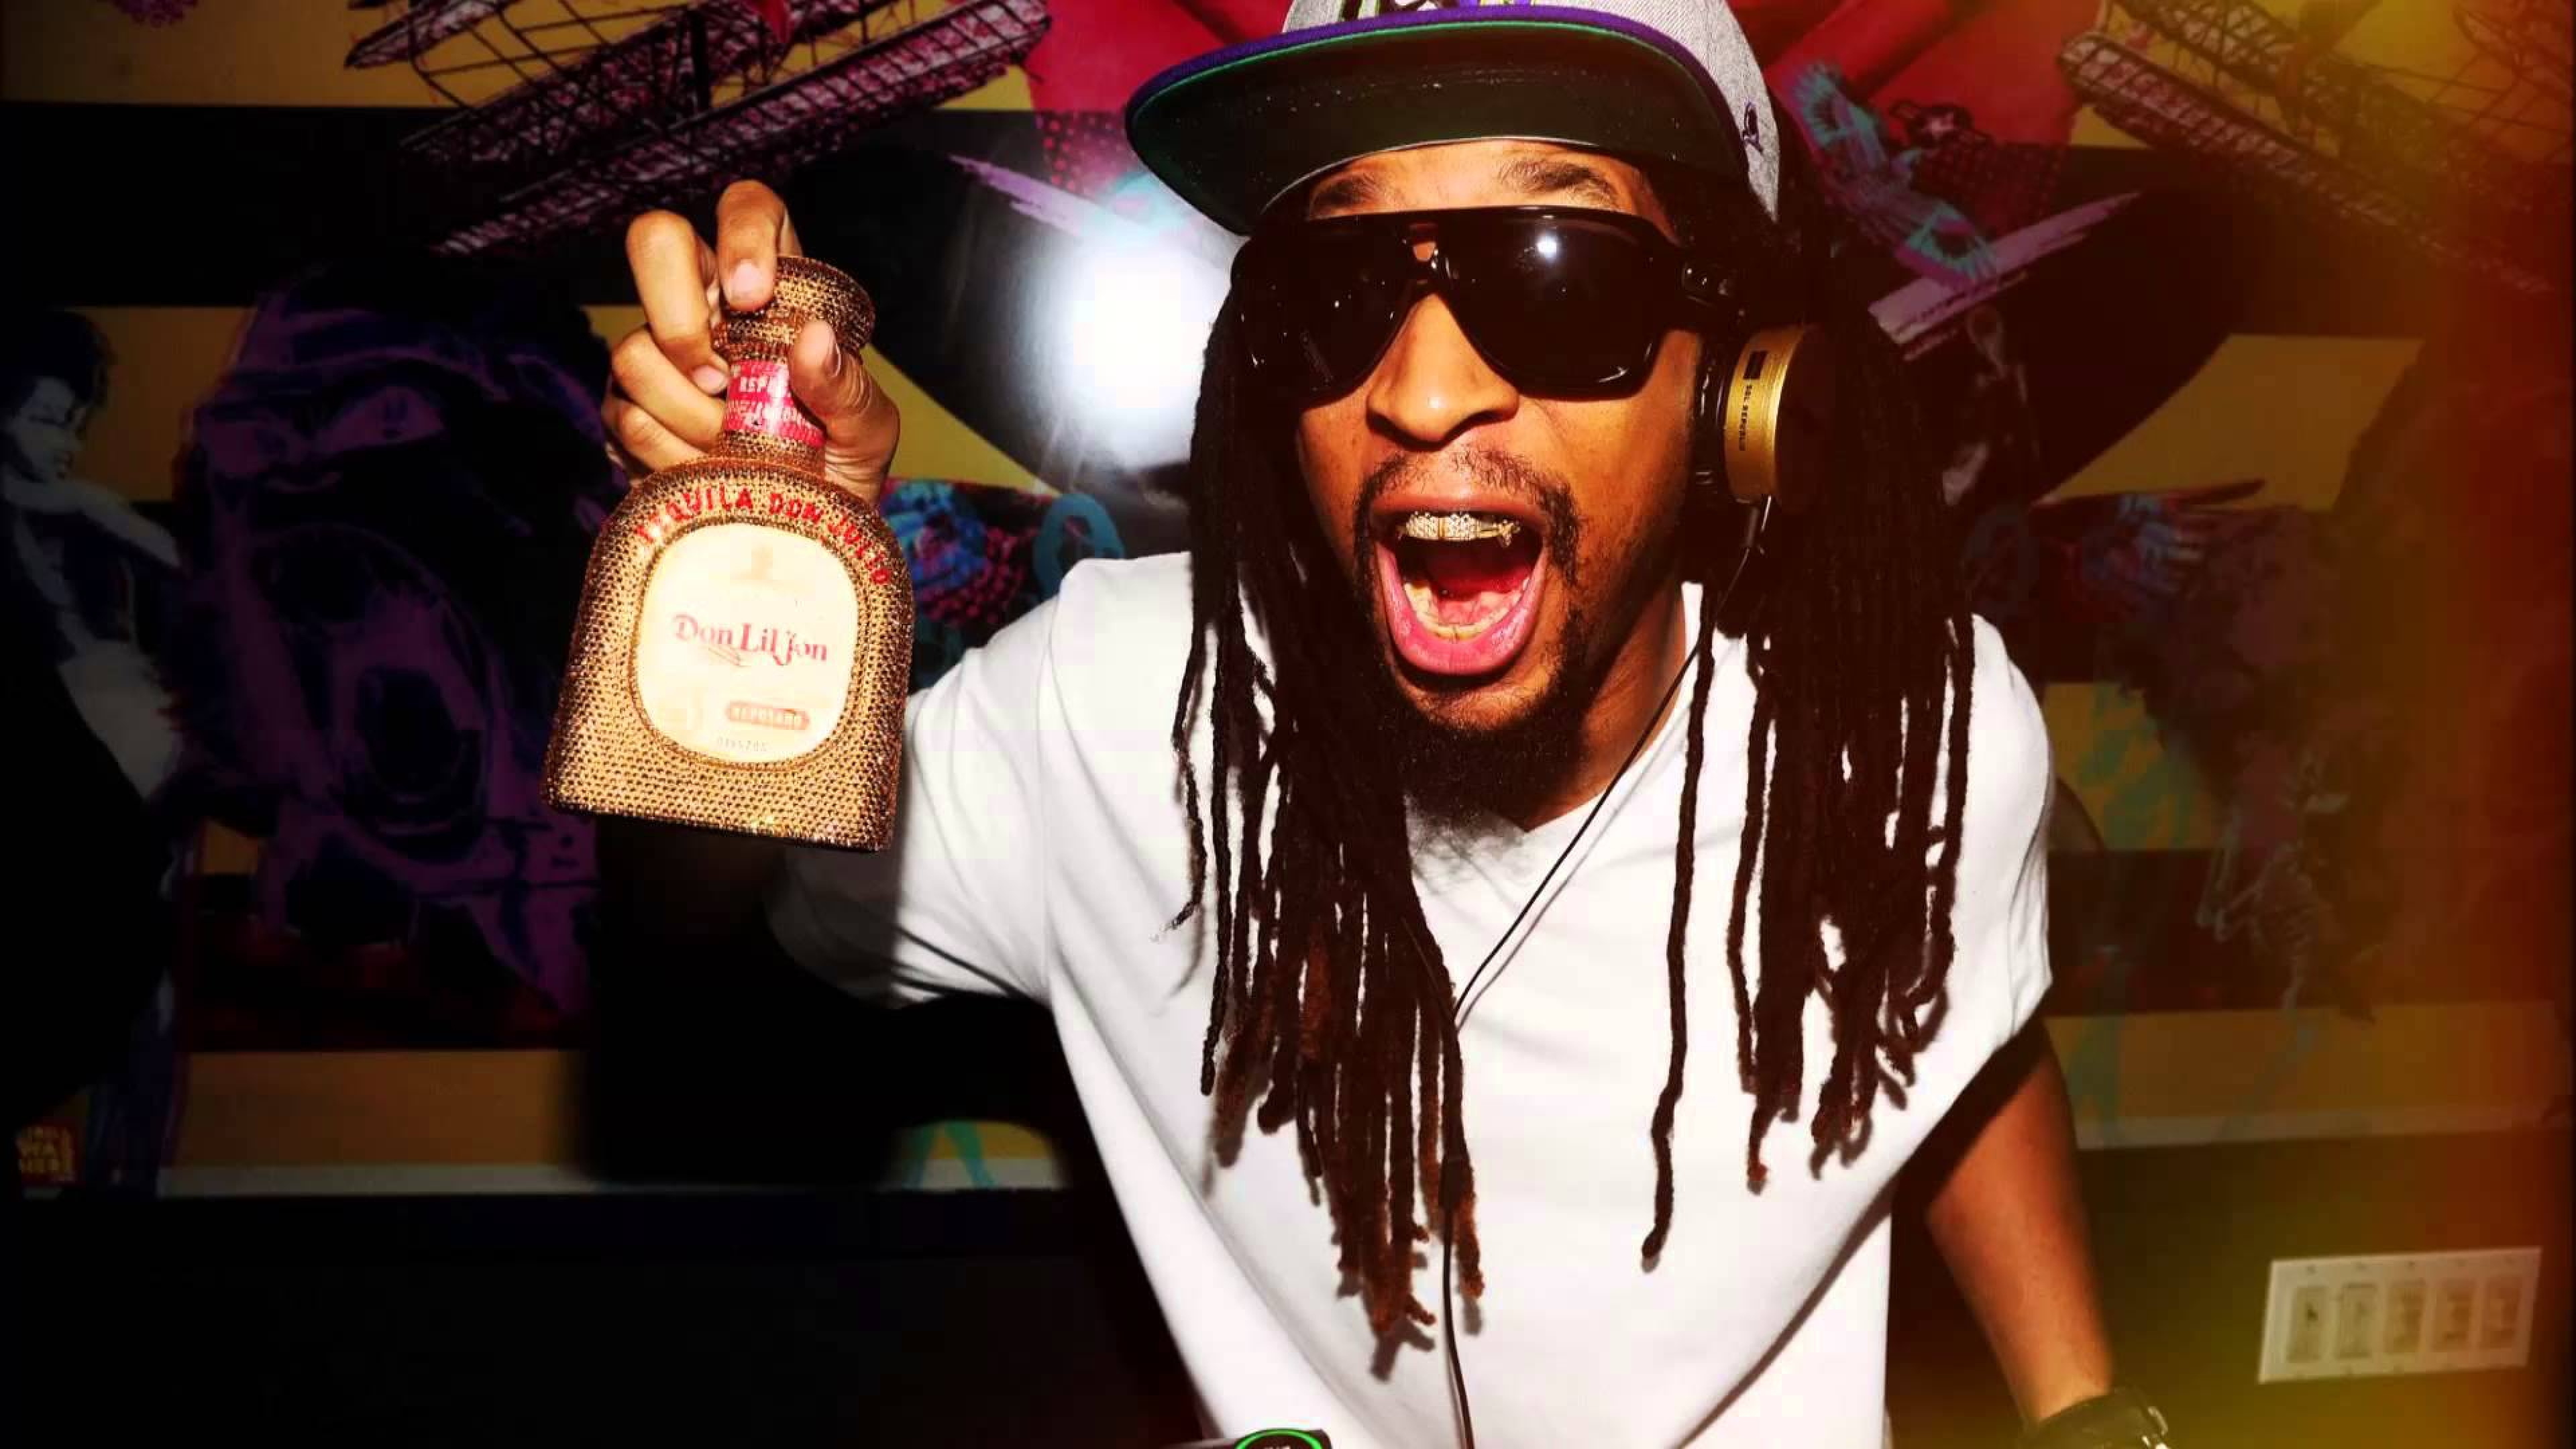 Download Wallpaper 3840x2160 Lil jon Rapper Gangster 3840x2160